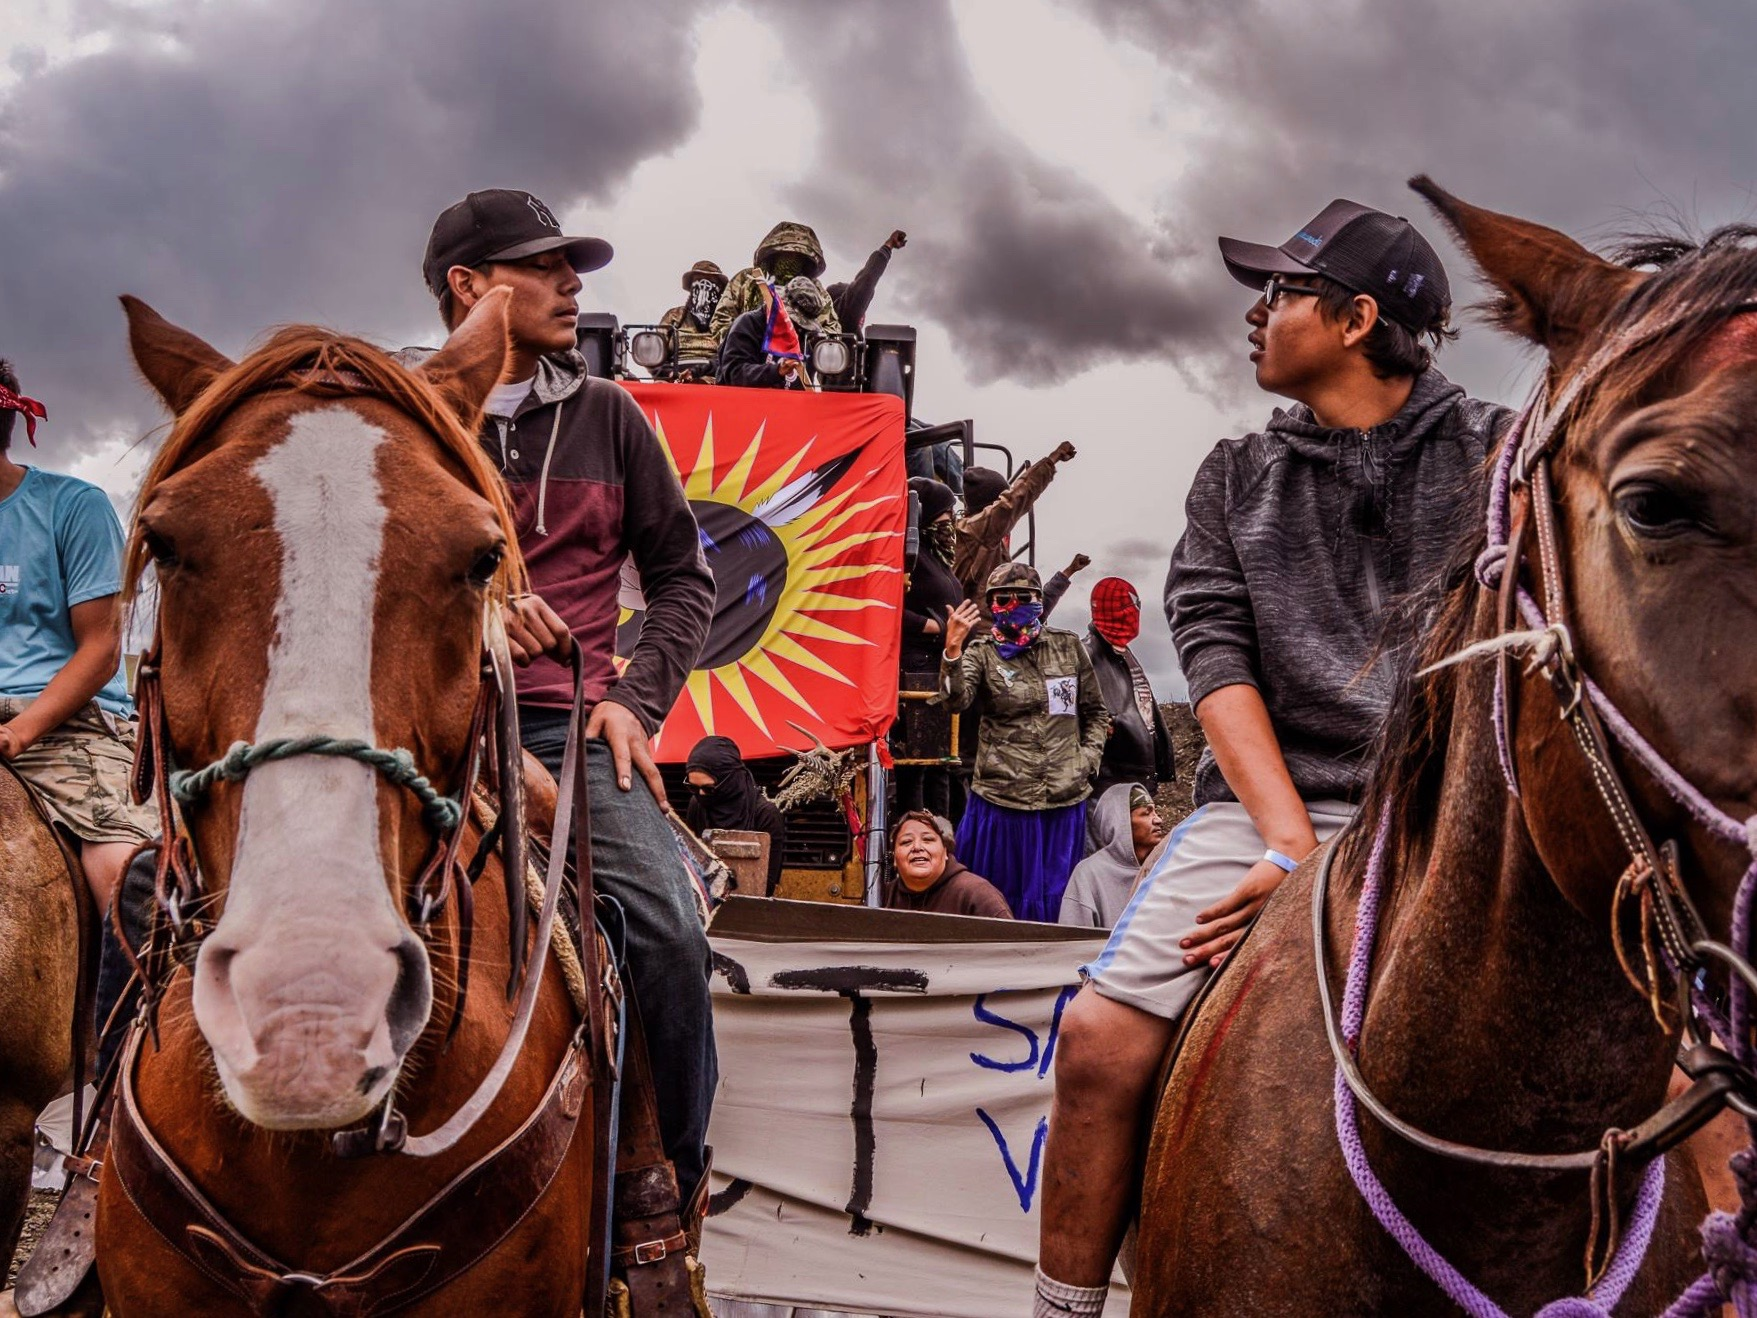 Gyasi Ross: The best option is to stop the Dakota Access Pipeline